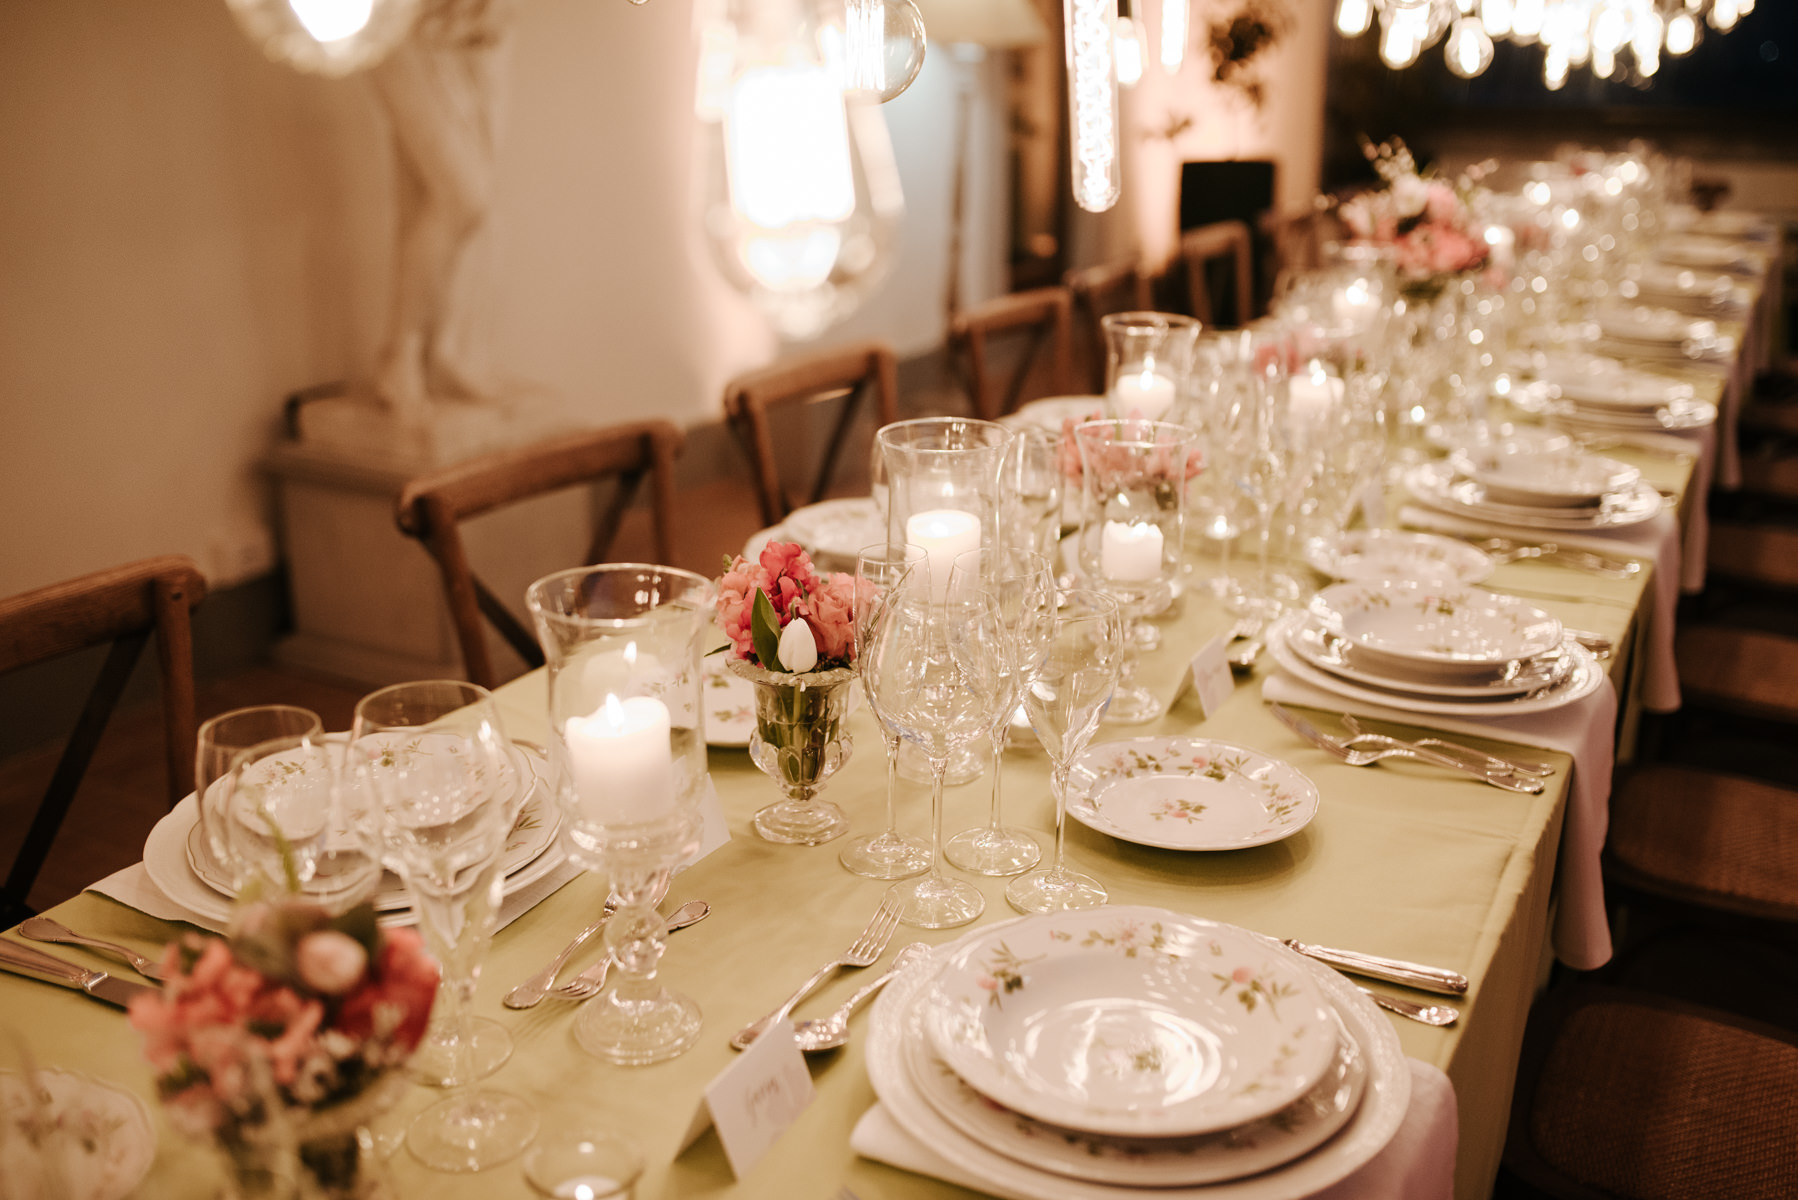 party-tablescape-decor-italy-tuscany